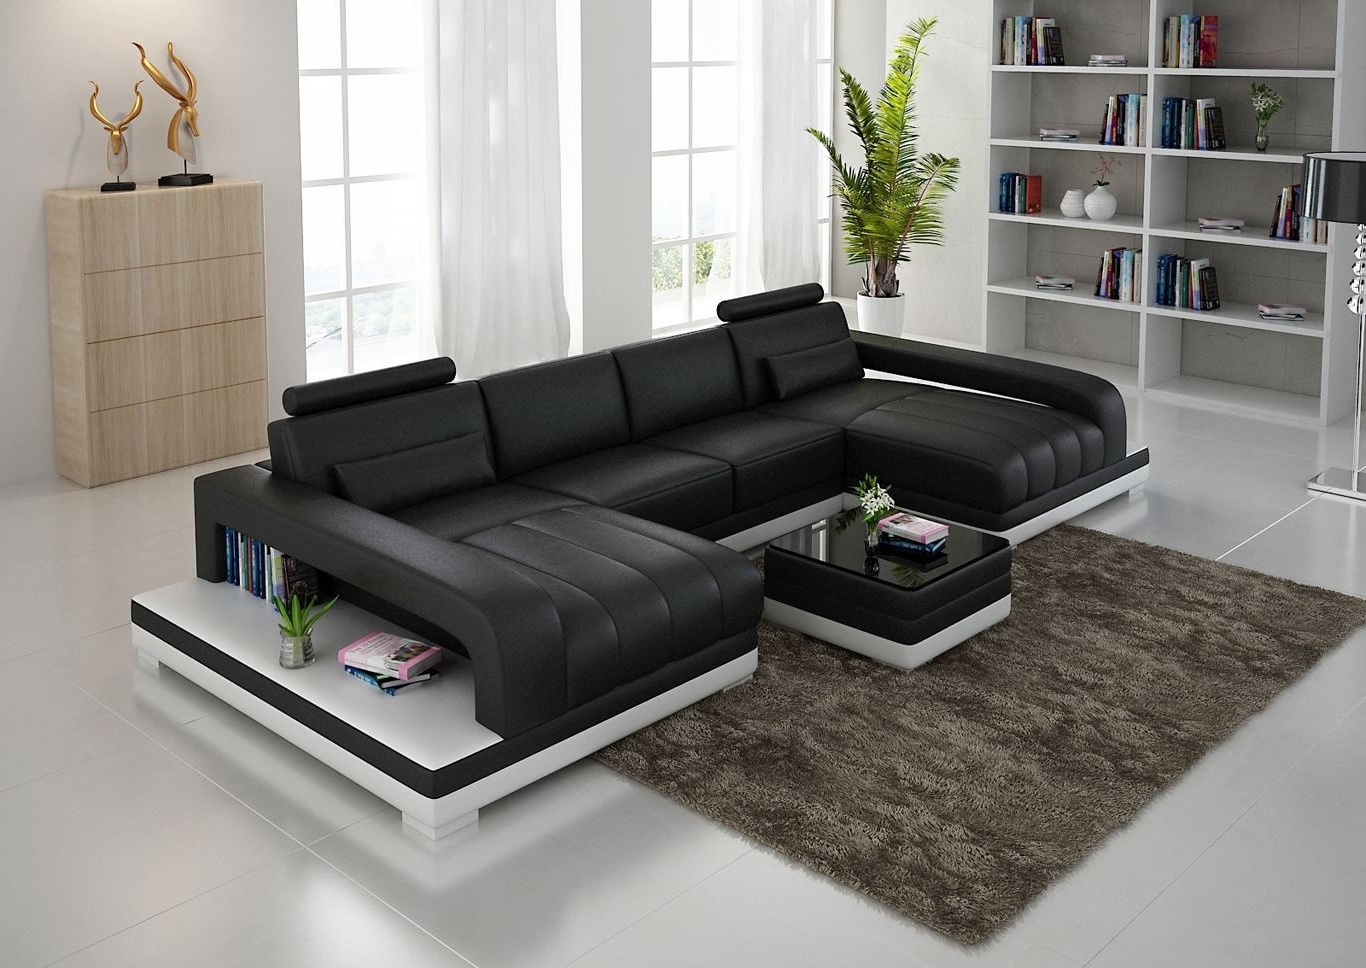 Favorite Dual Chaise Sectionals In Double Chaise Sectional Sofas: Type And Finishing (View 4 of 15)